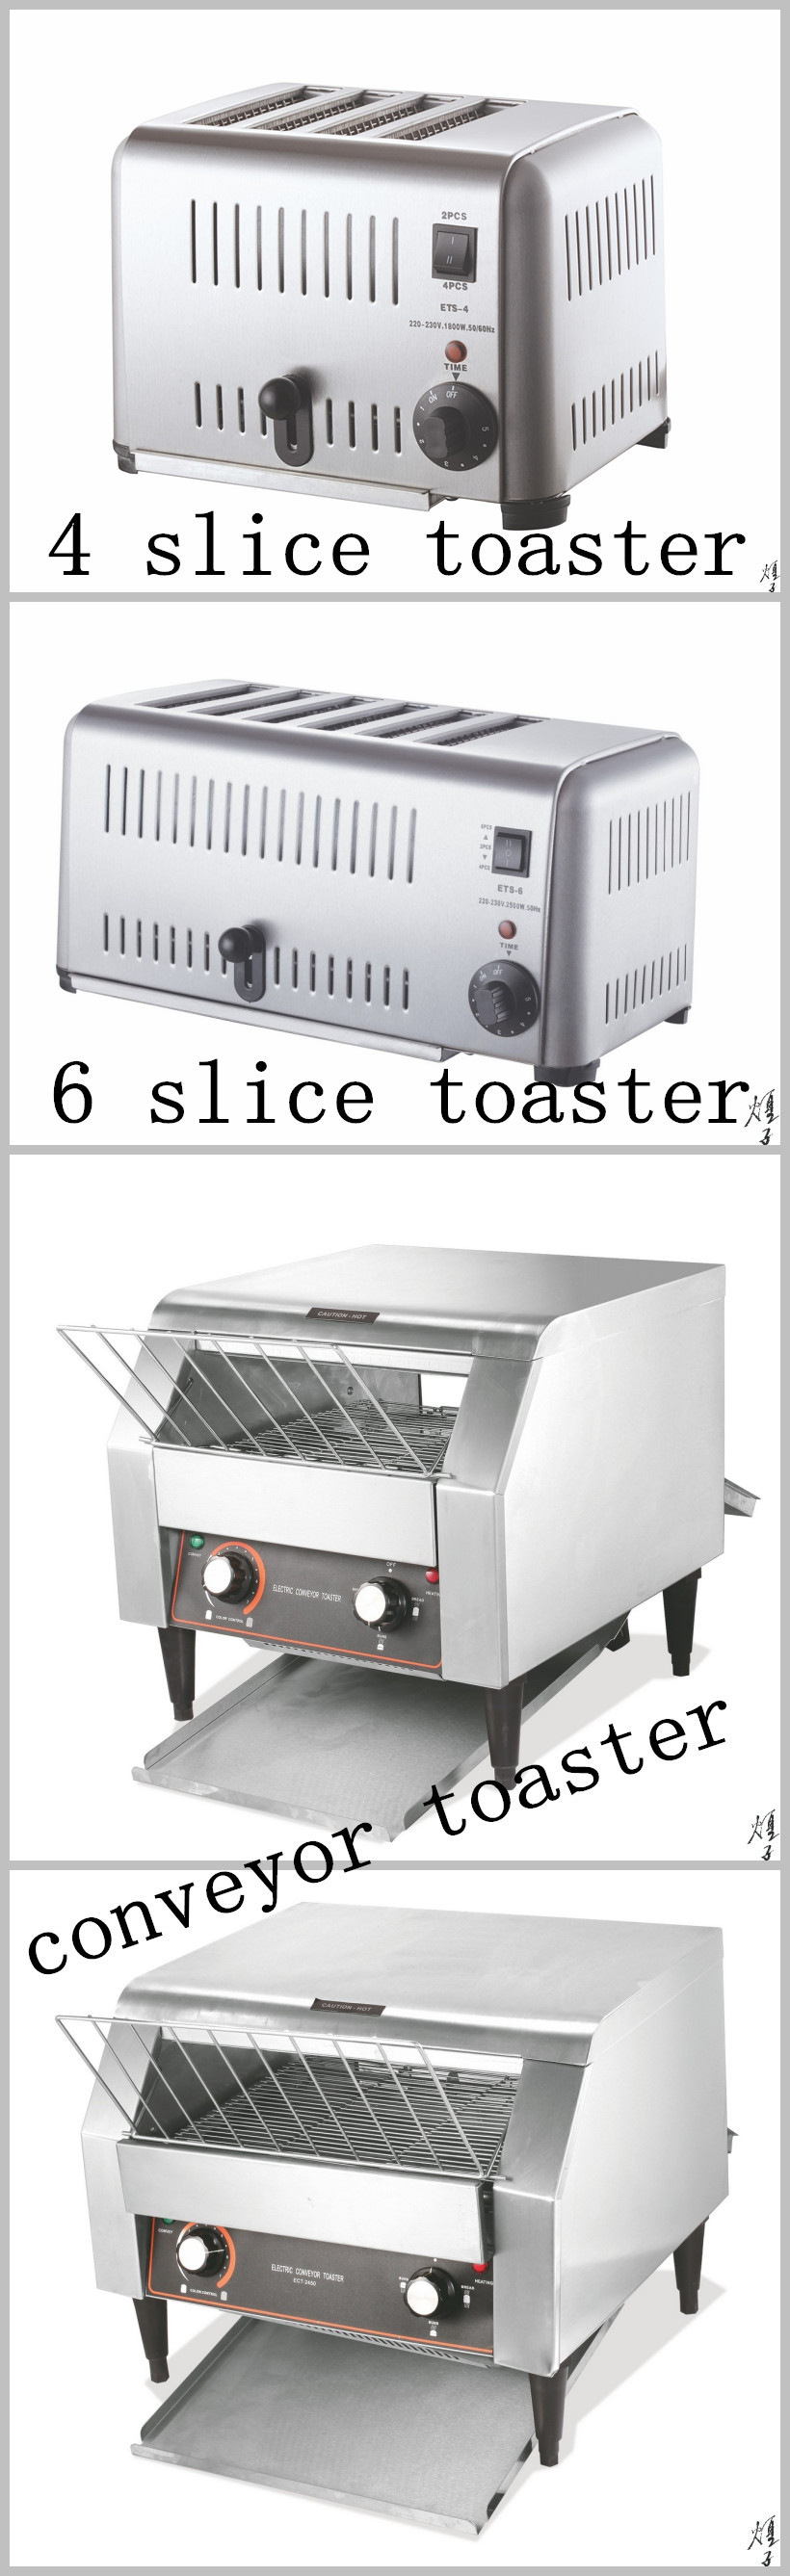 industrial tech before has me family double won wall toaster convection oven bosch cooking over zone